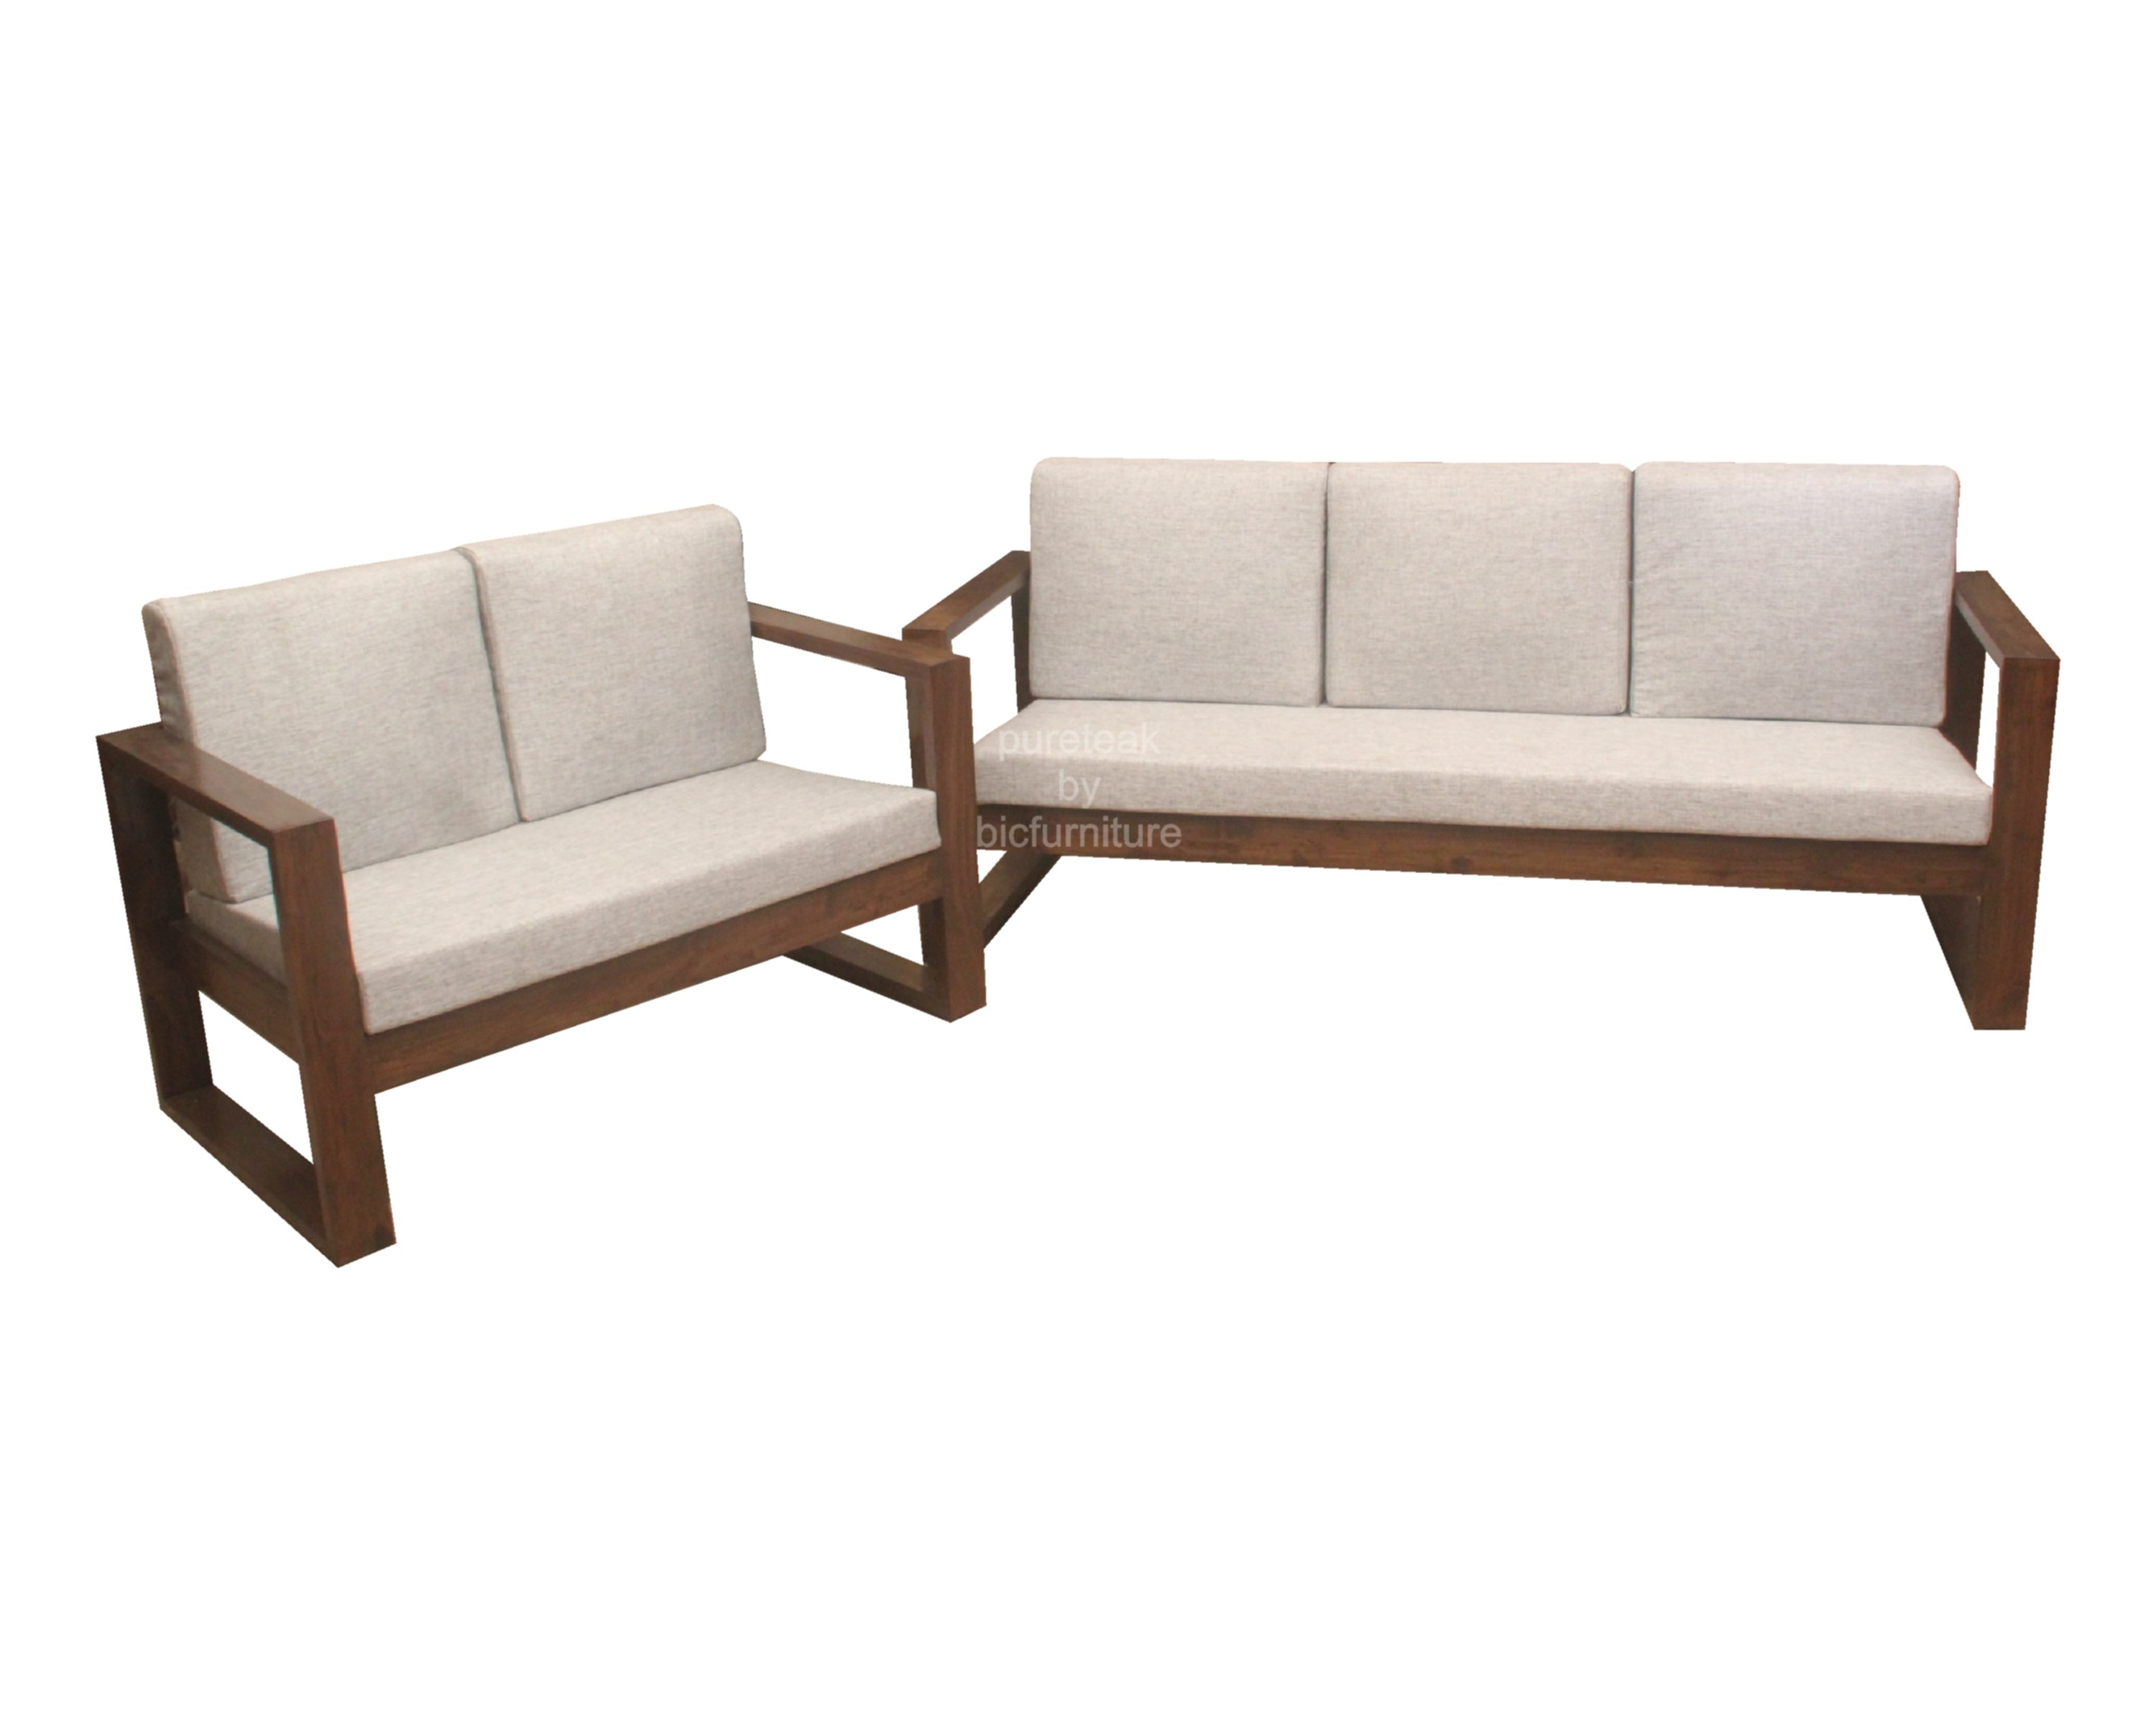 Simple wooden sofa set designs design decoration for Wooden sofa set designs for small living room